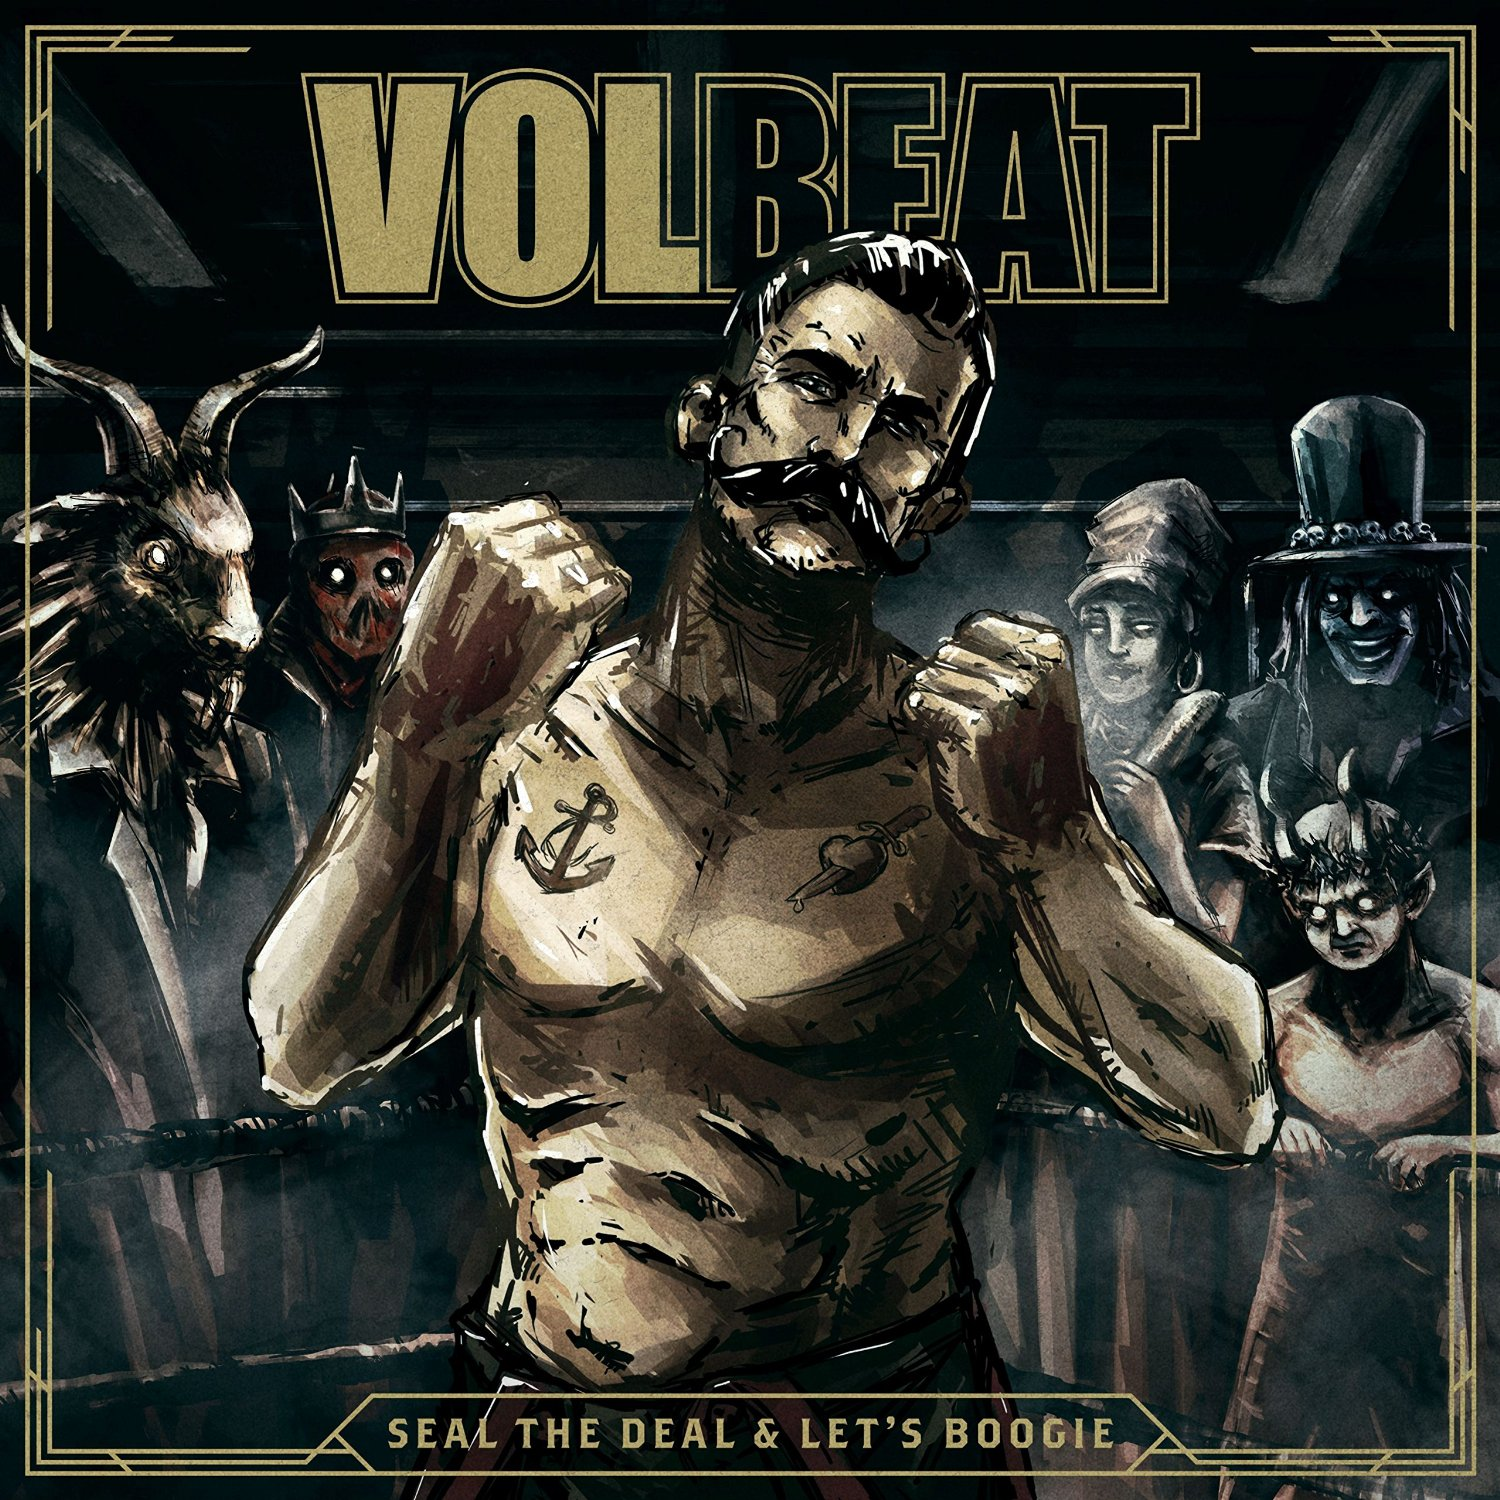 VOLBEAT-Seal the deal cover